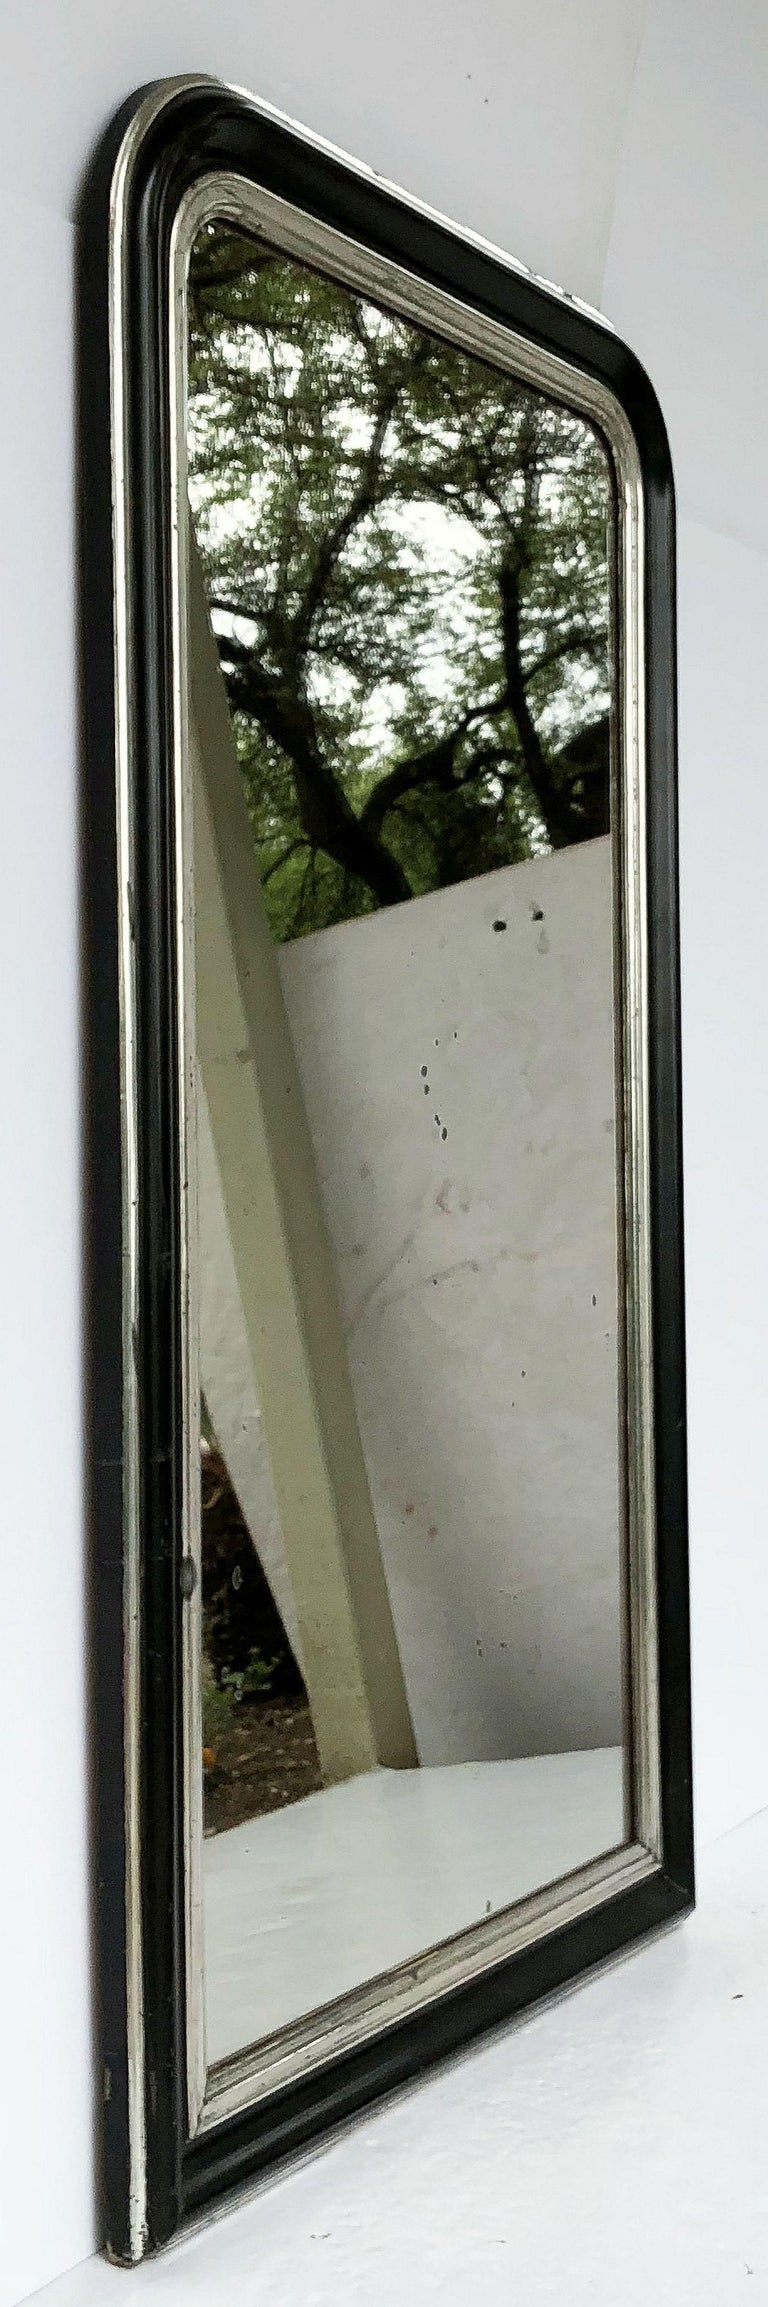 A handsome large Napoleon III period wall mirror featuring a lovely moulded surround and a design around the frame of black and silver leaf, with original mirrored glass.  Dimensions: H 53 1/2 x W 32 1/4